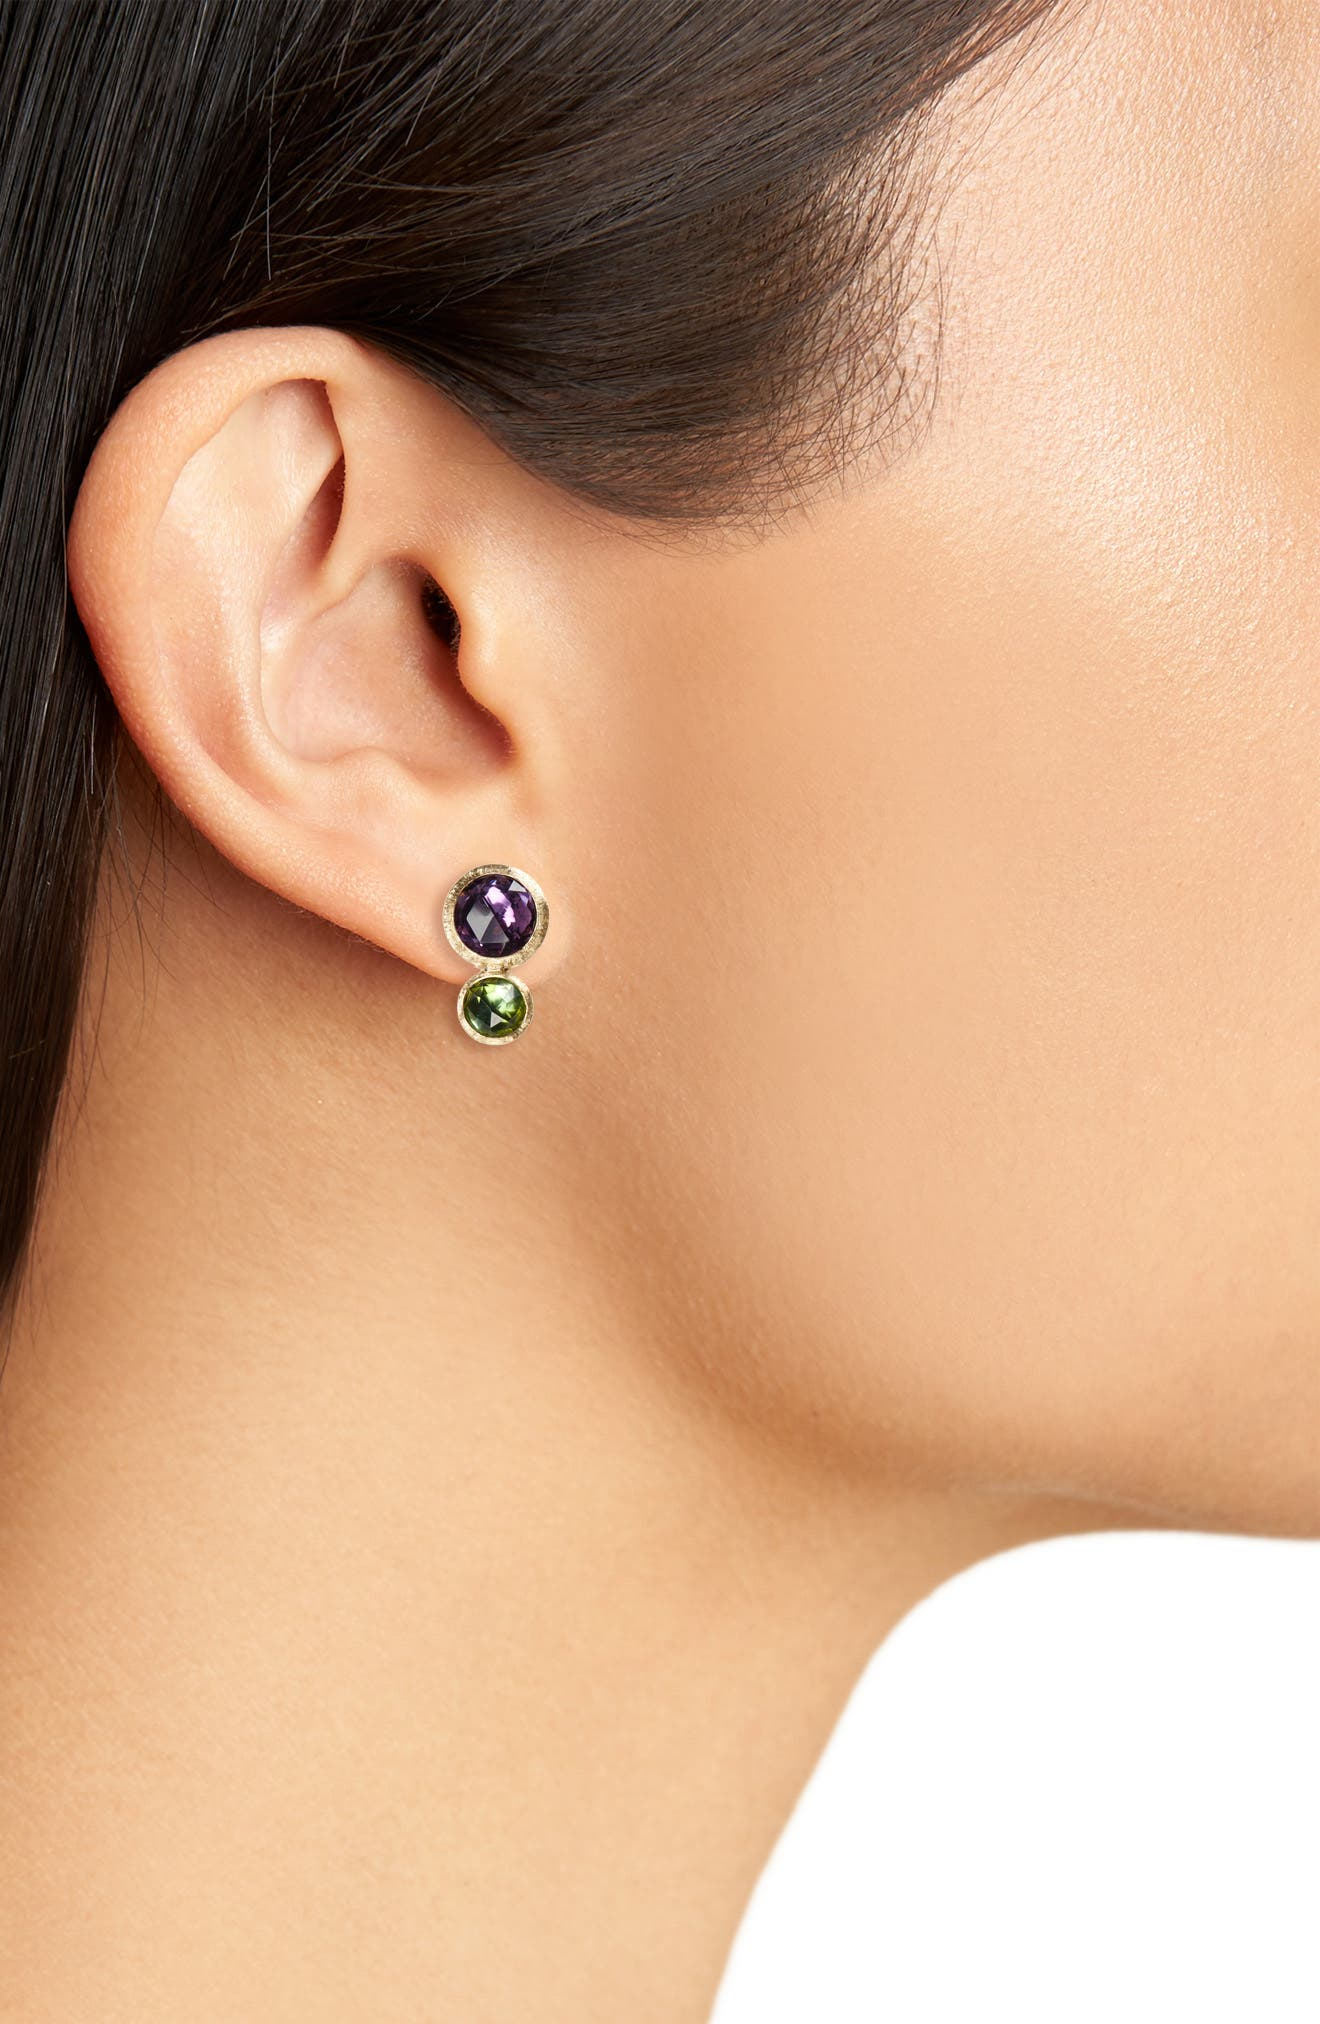 Jaipur Amethyst & Tourmaline Stud Earrings,                             Alternate thumbnail 2, color,                             Yello Gold/ Amethyst